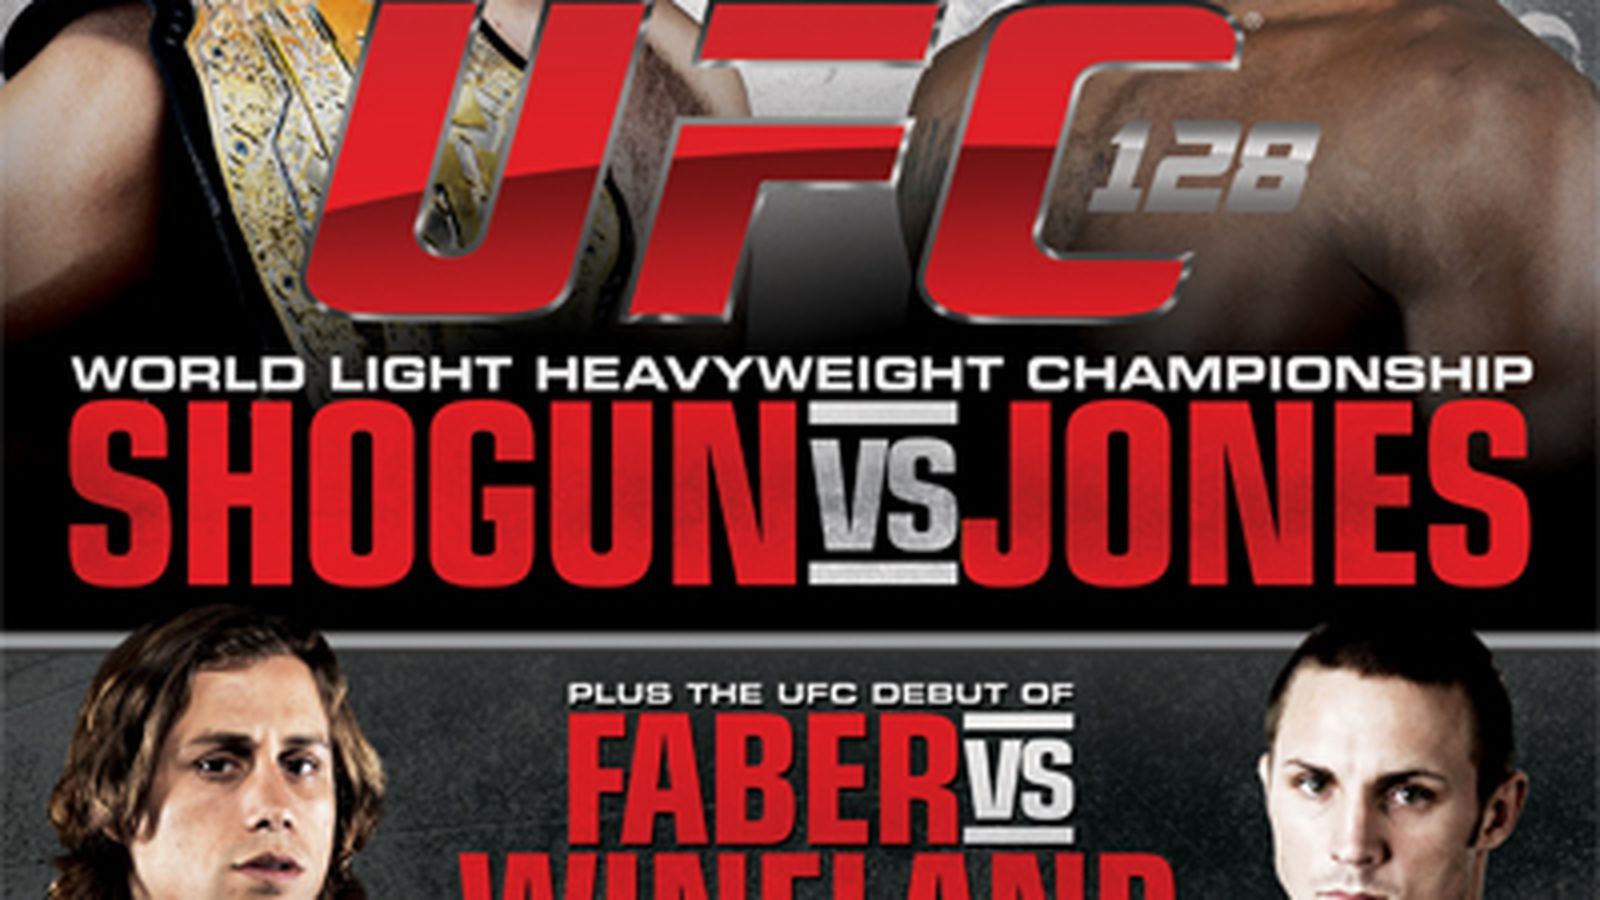 Ufc 128 betting odds early betting lines nfl playoffs